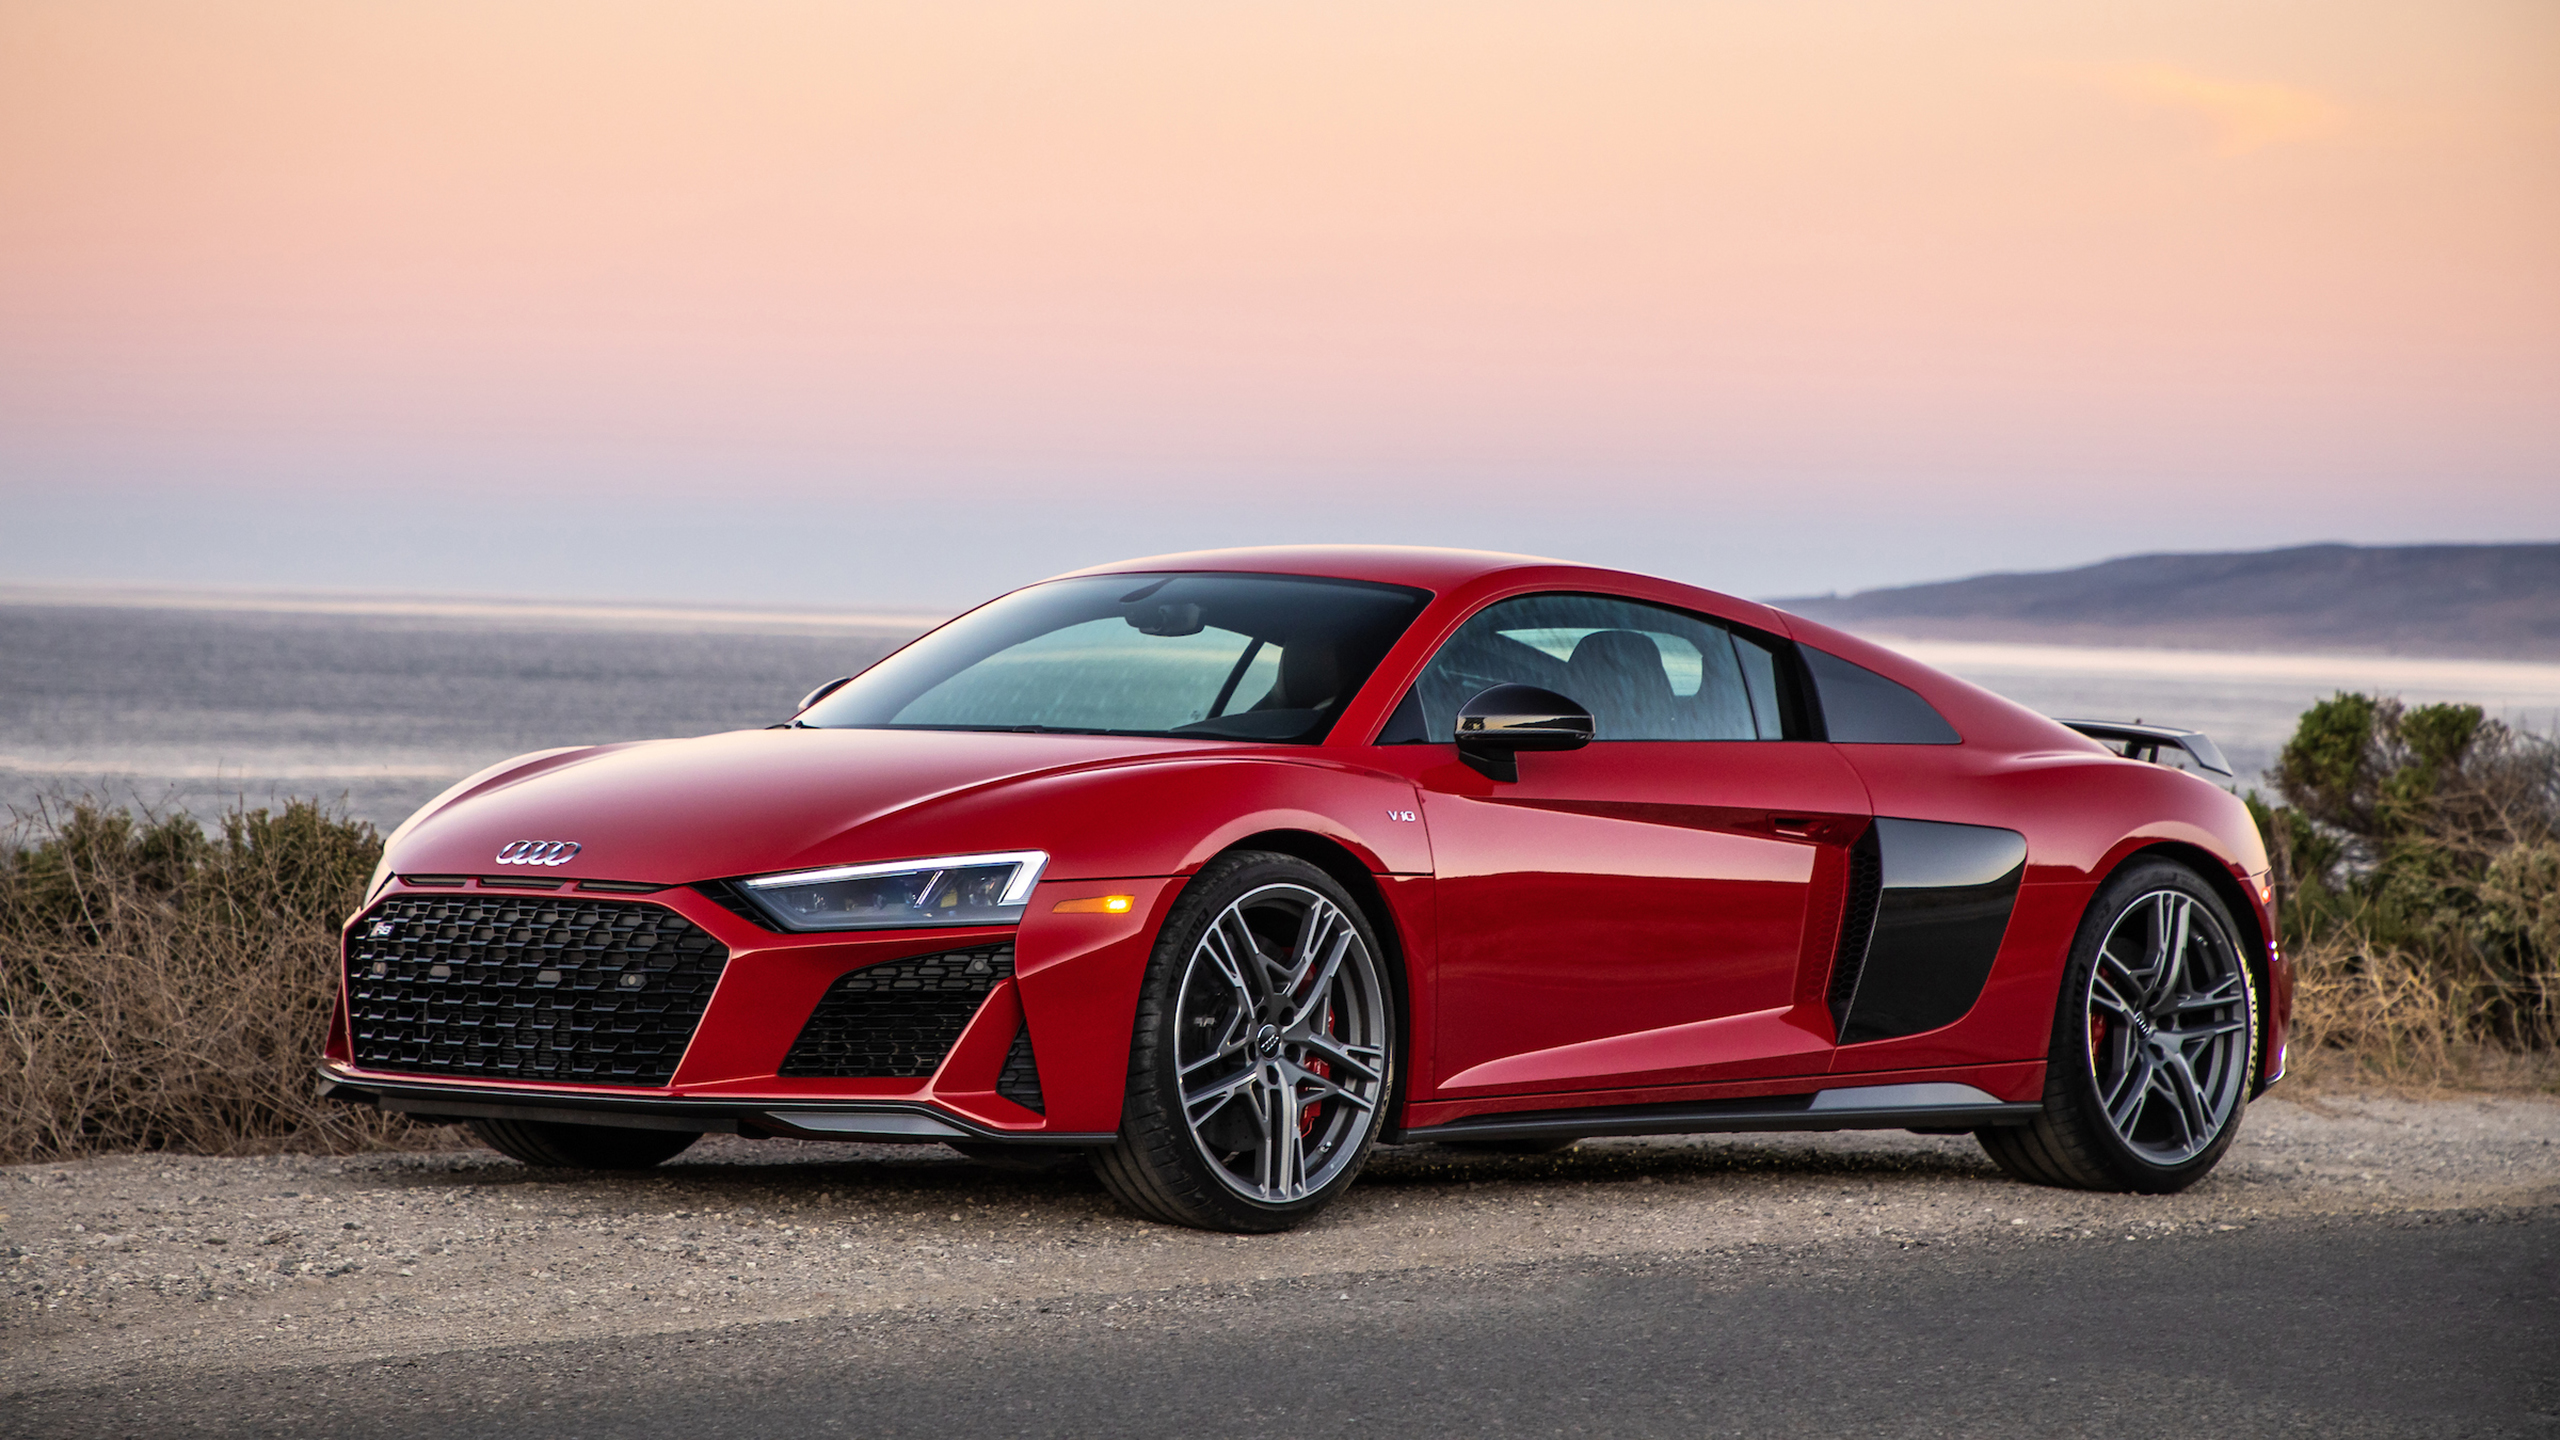 2020 Audi R8 V10 Performance Wallpaper Hd Car Wallpapers Id 14723